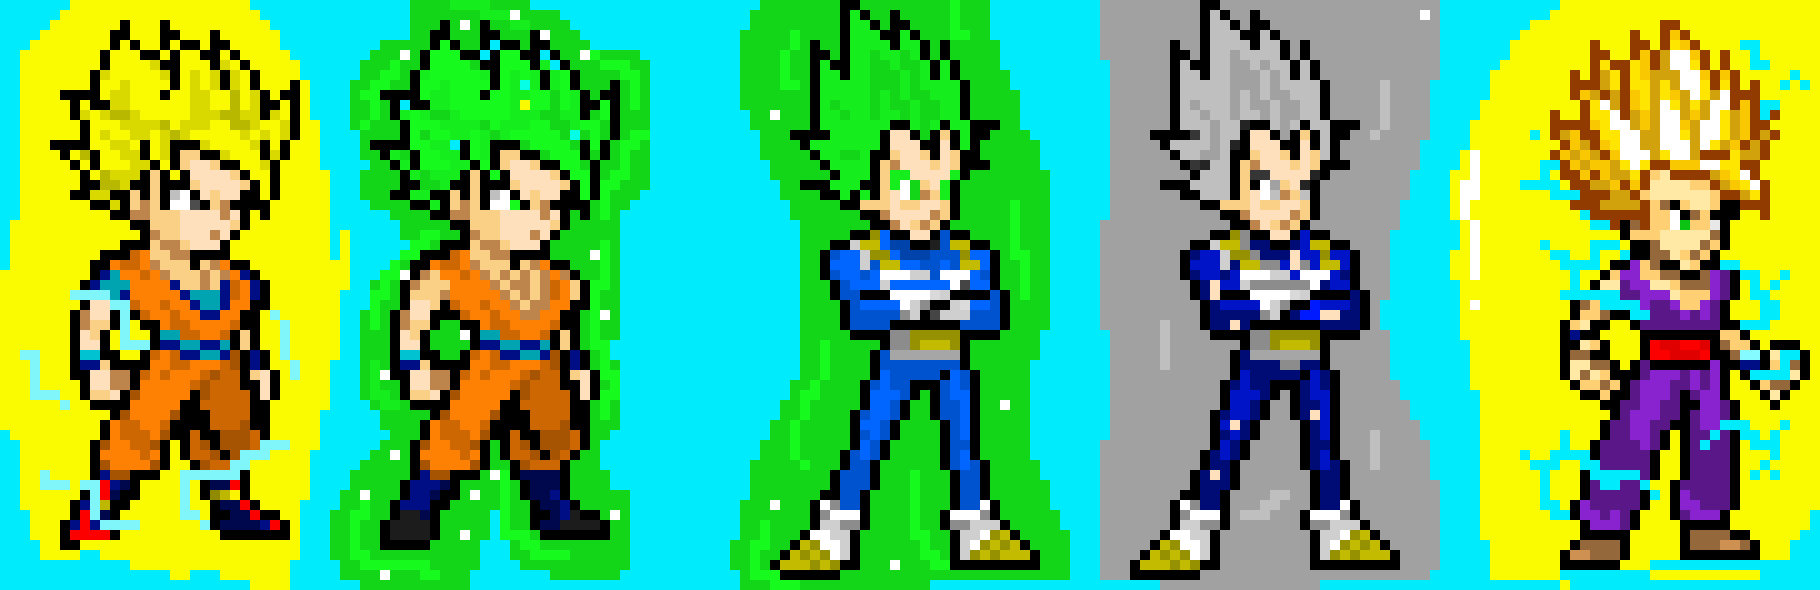 Super Saiyan Green Goku And Vegeta And Super Saiyan 1 And 2